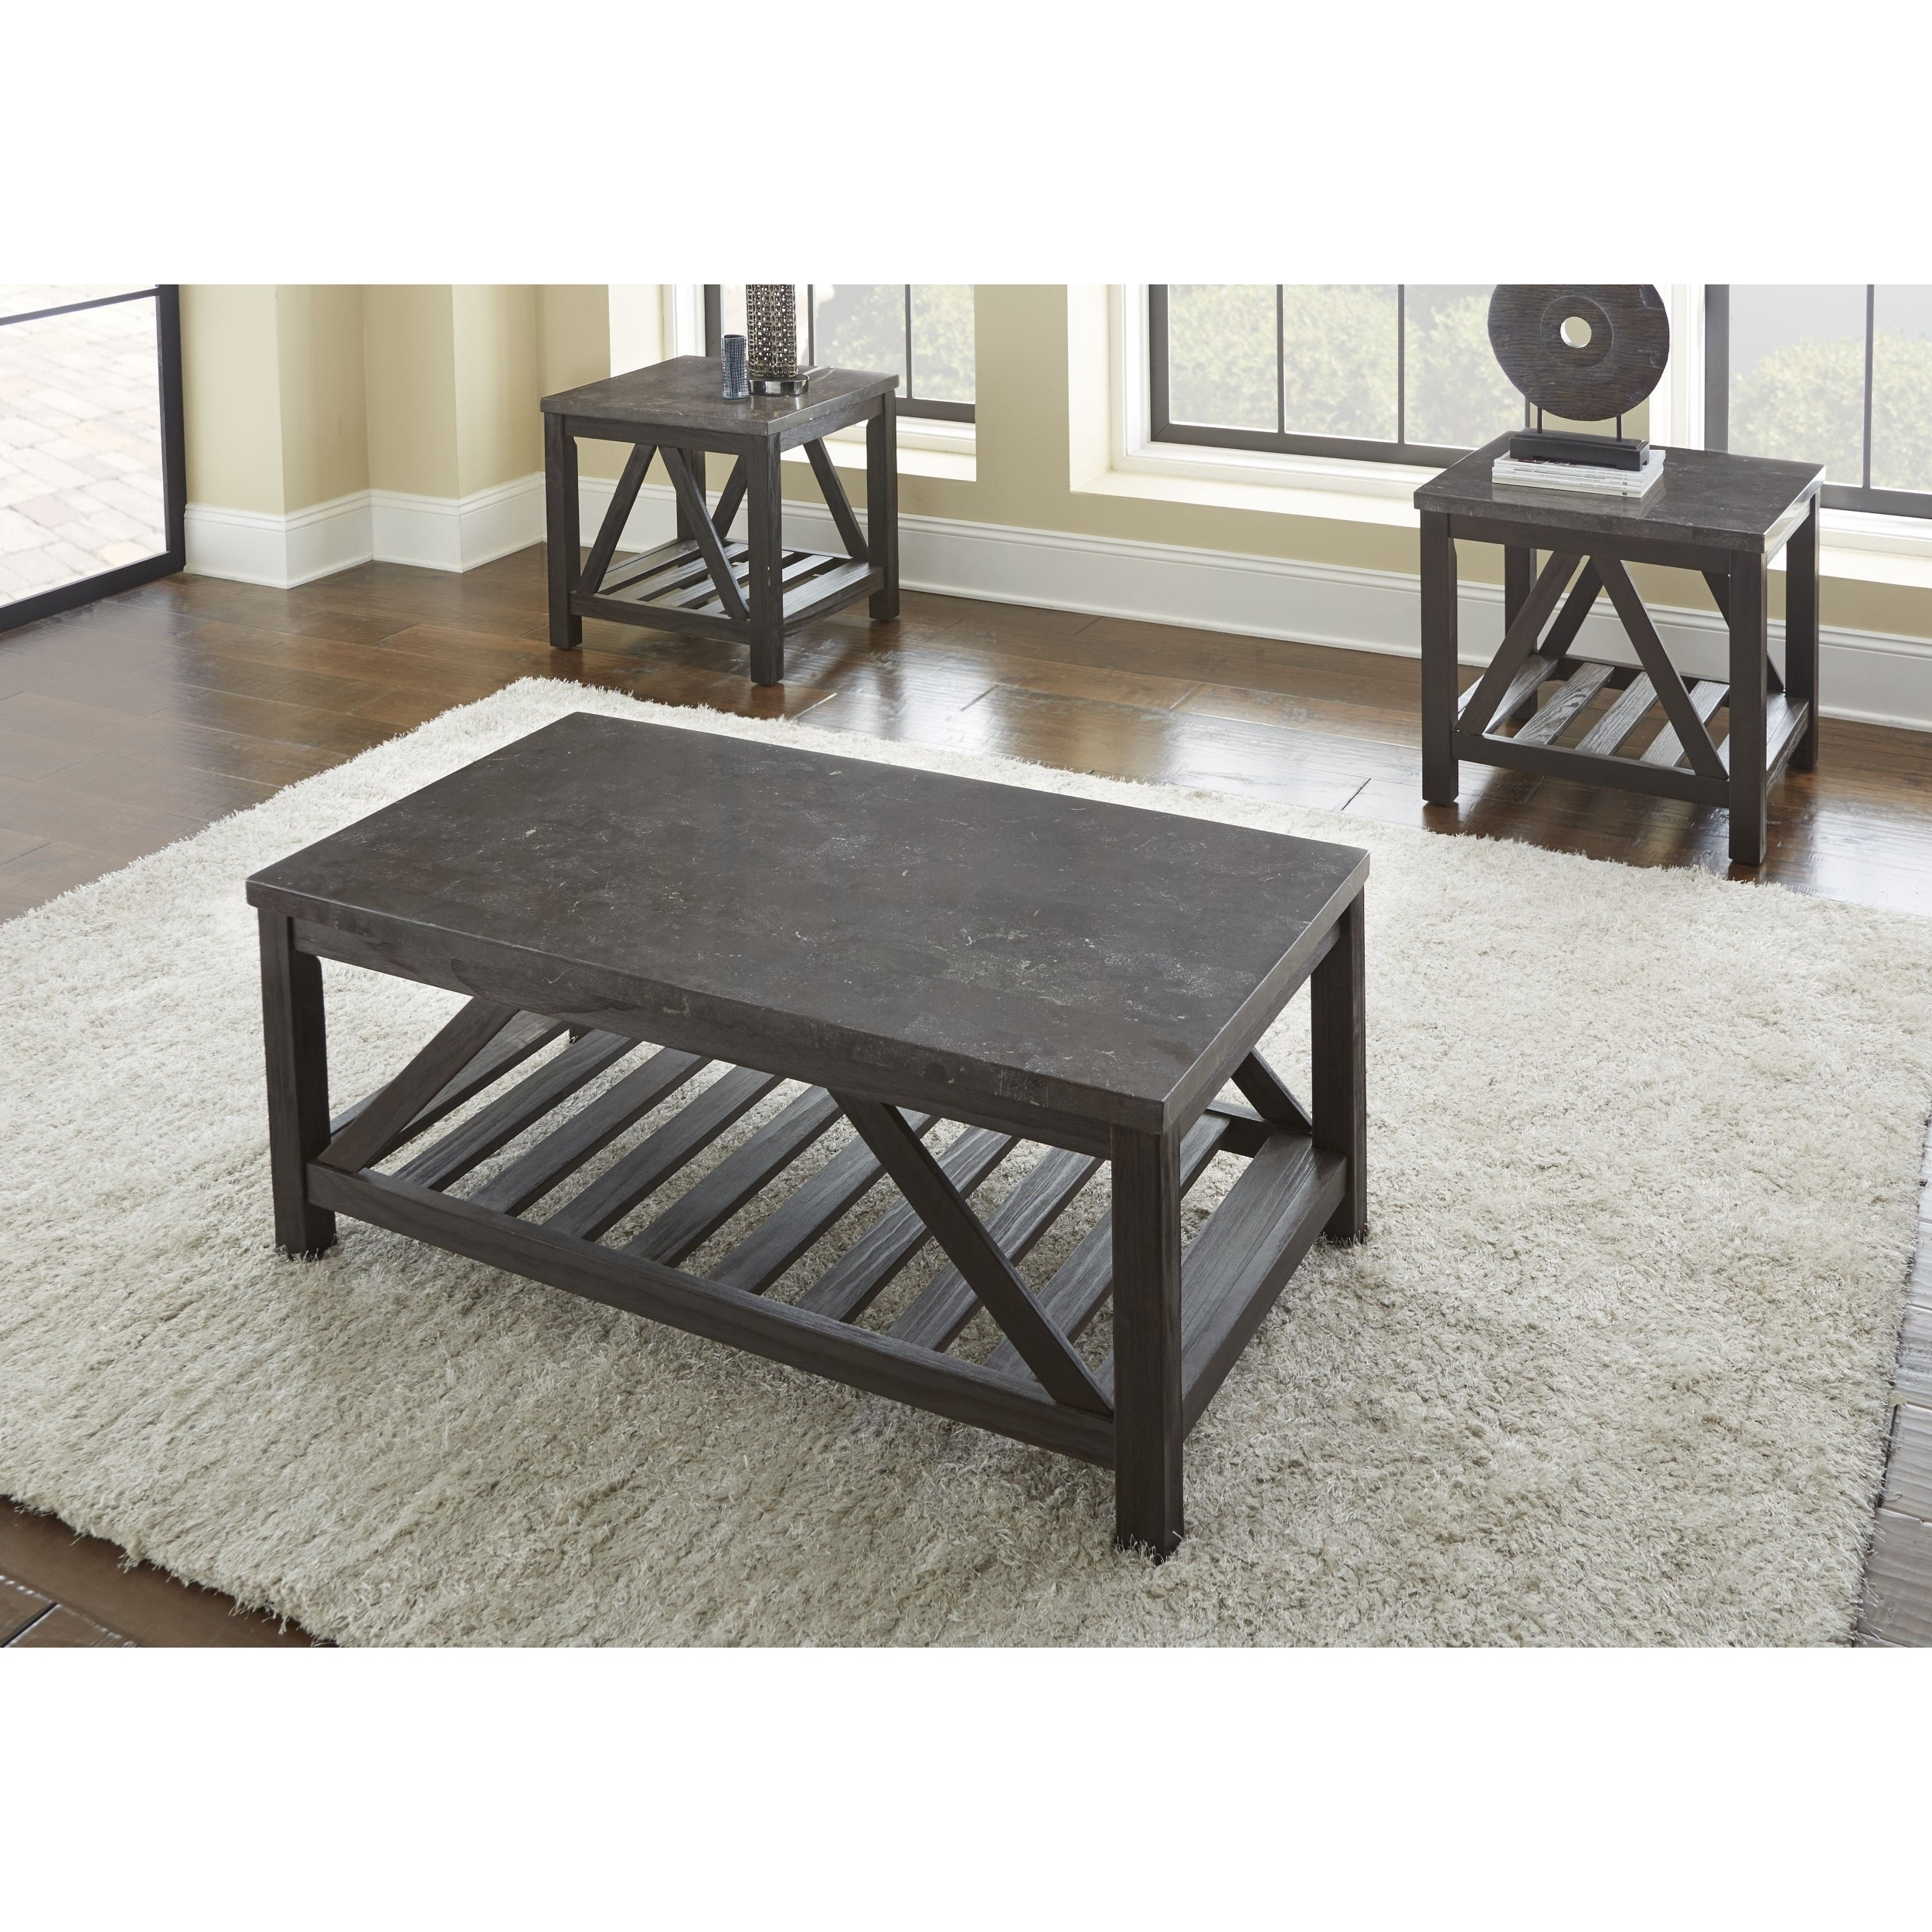 New Badin 48 Inch Rectangle Coffee Table With Bluestone Topgreyson  Living With Regard To Most Up To Date Carbon Loft Hamilton 48 Inch Coffee Tables (View 16 of 20)